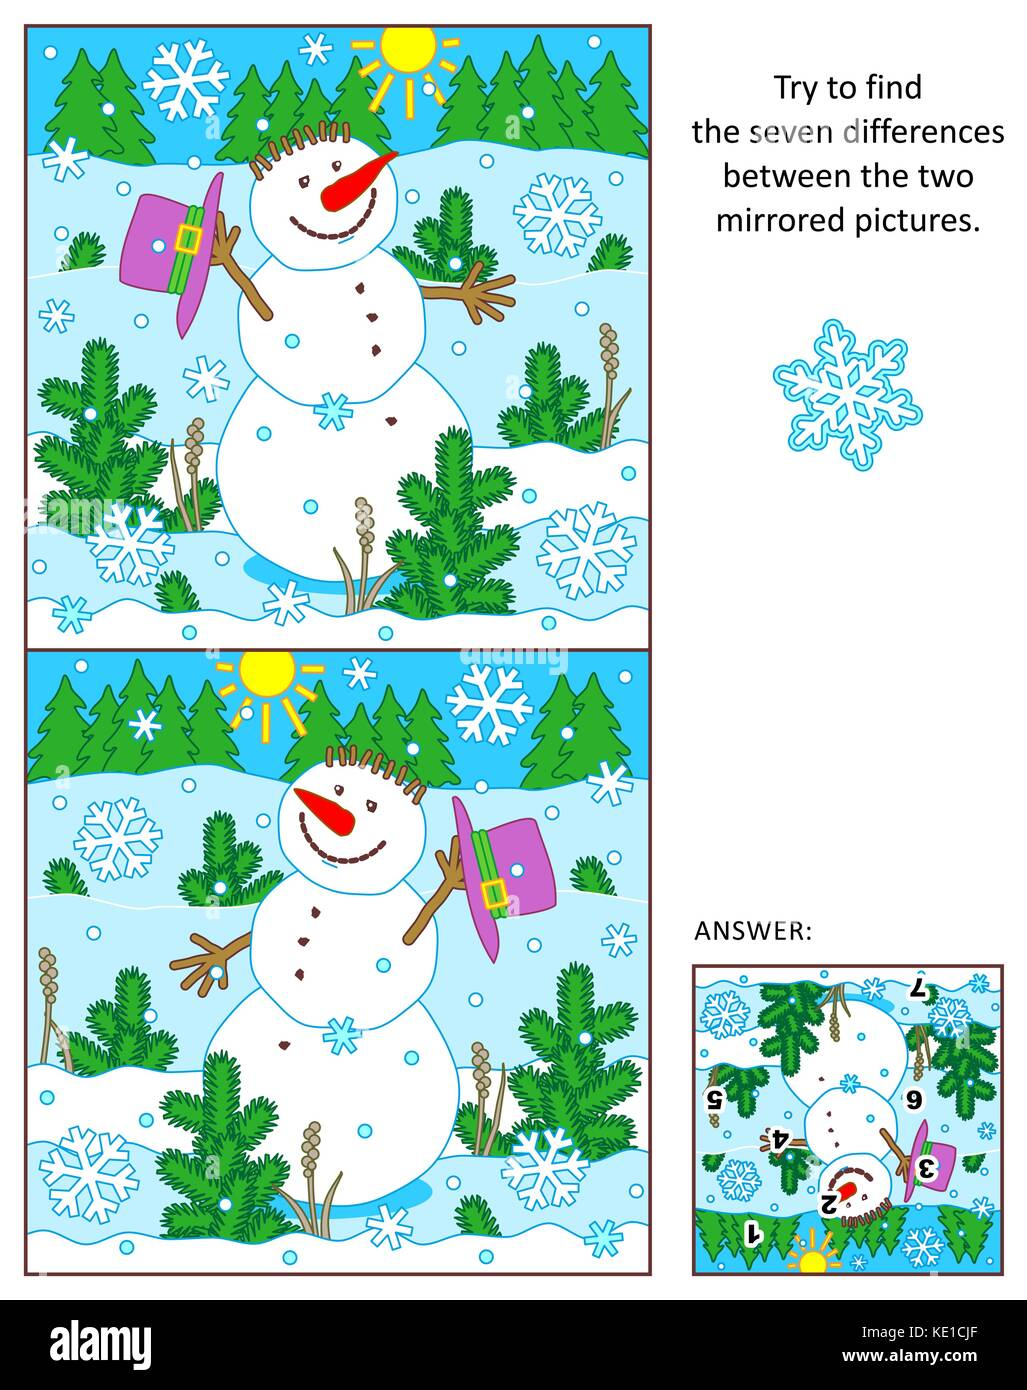 Winter, New Year or Christmas themed visual puzzle: Find the seven differences between the two mirrored pictures - Stock Image